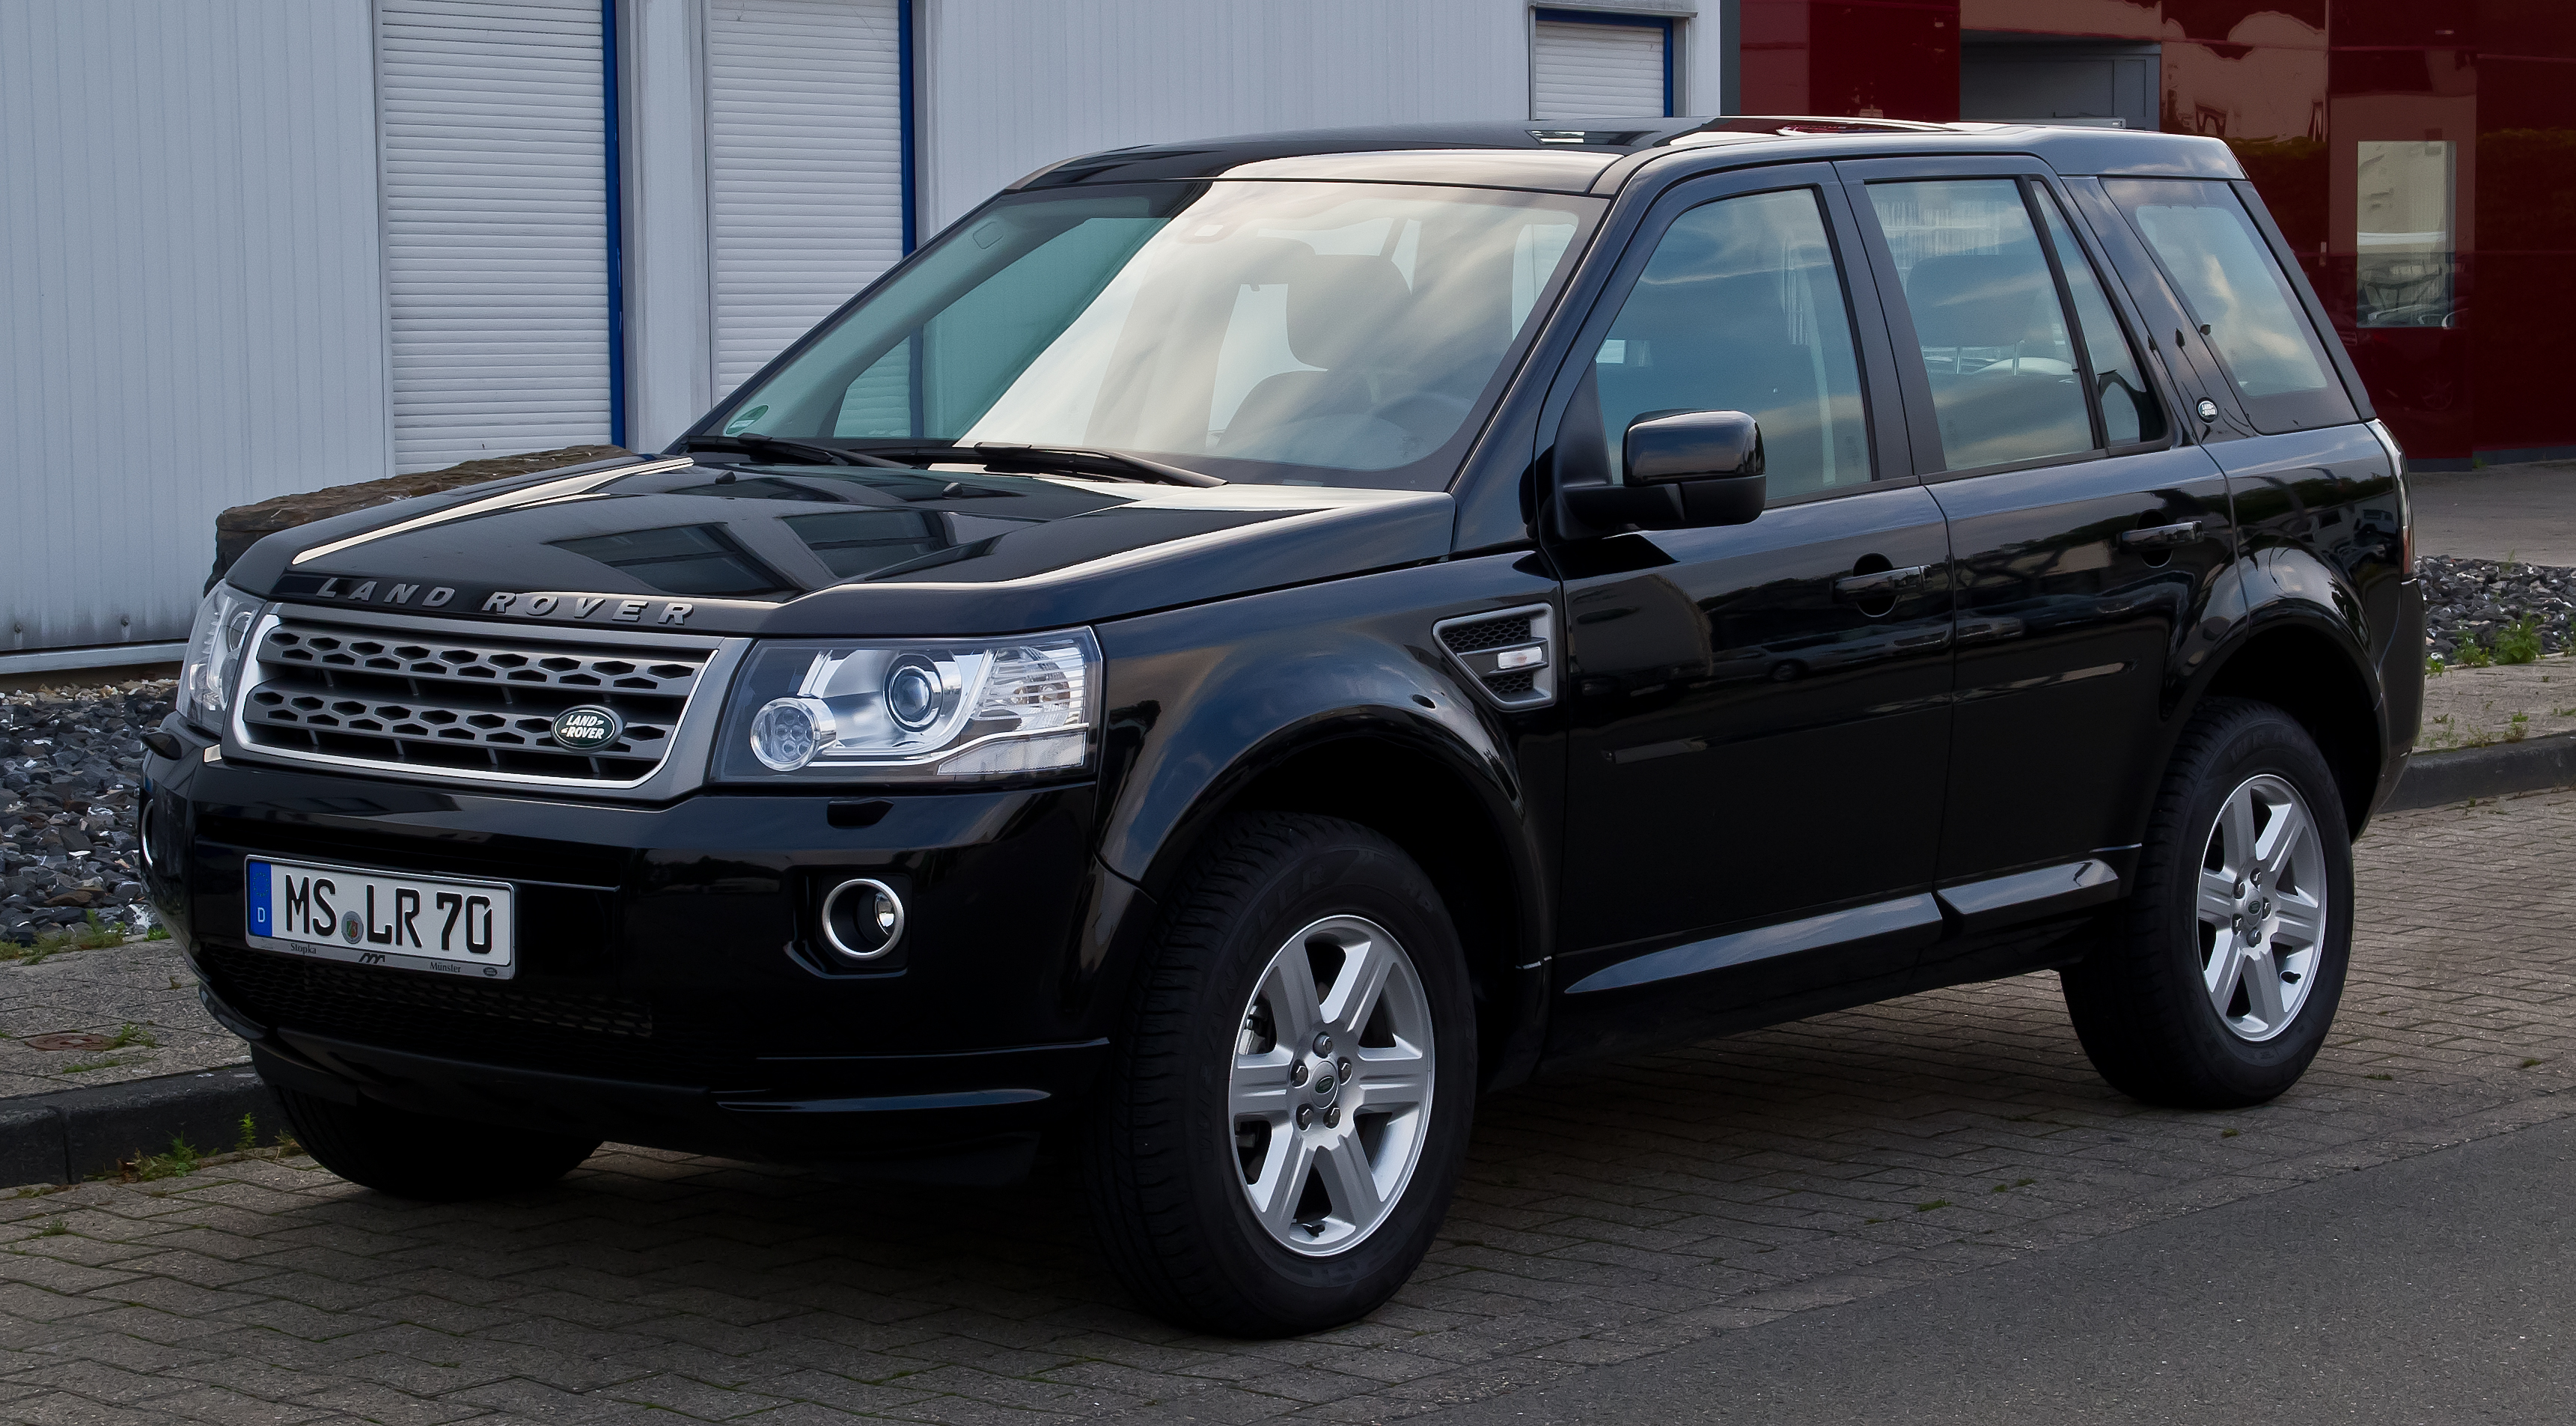 Pictures of land rover freelander #5